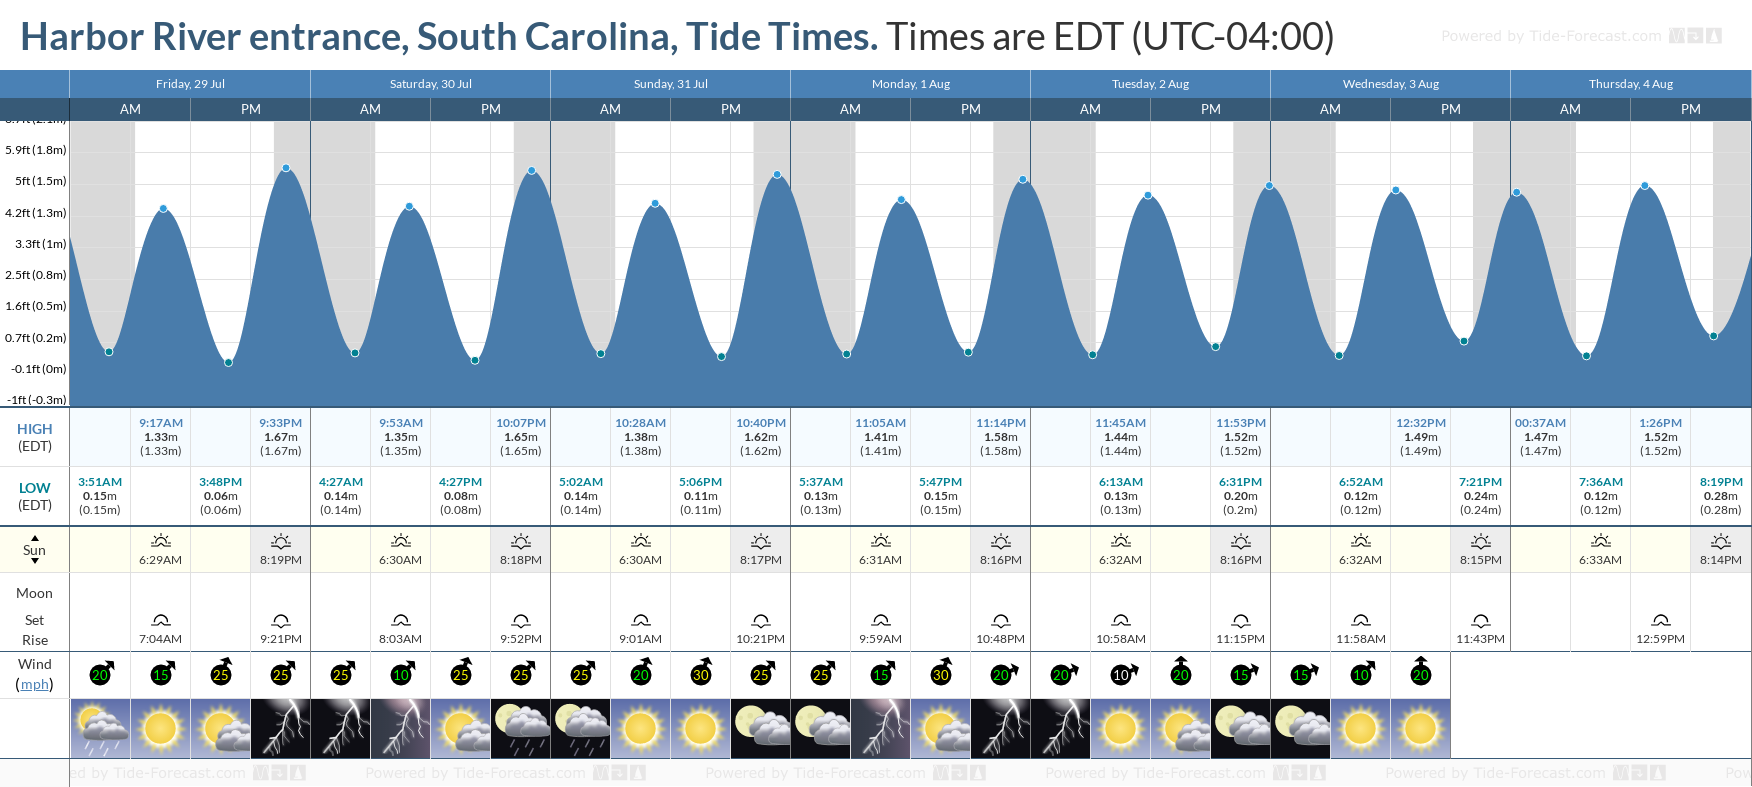 Harbor River entrance, South Carolina Tide Chart including high and low tide tide times for the next 7 days